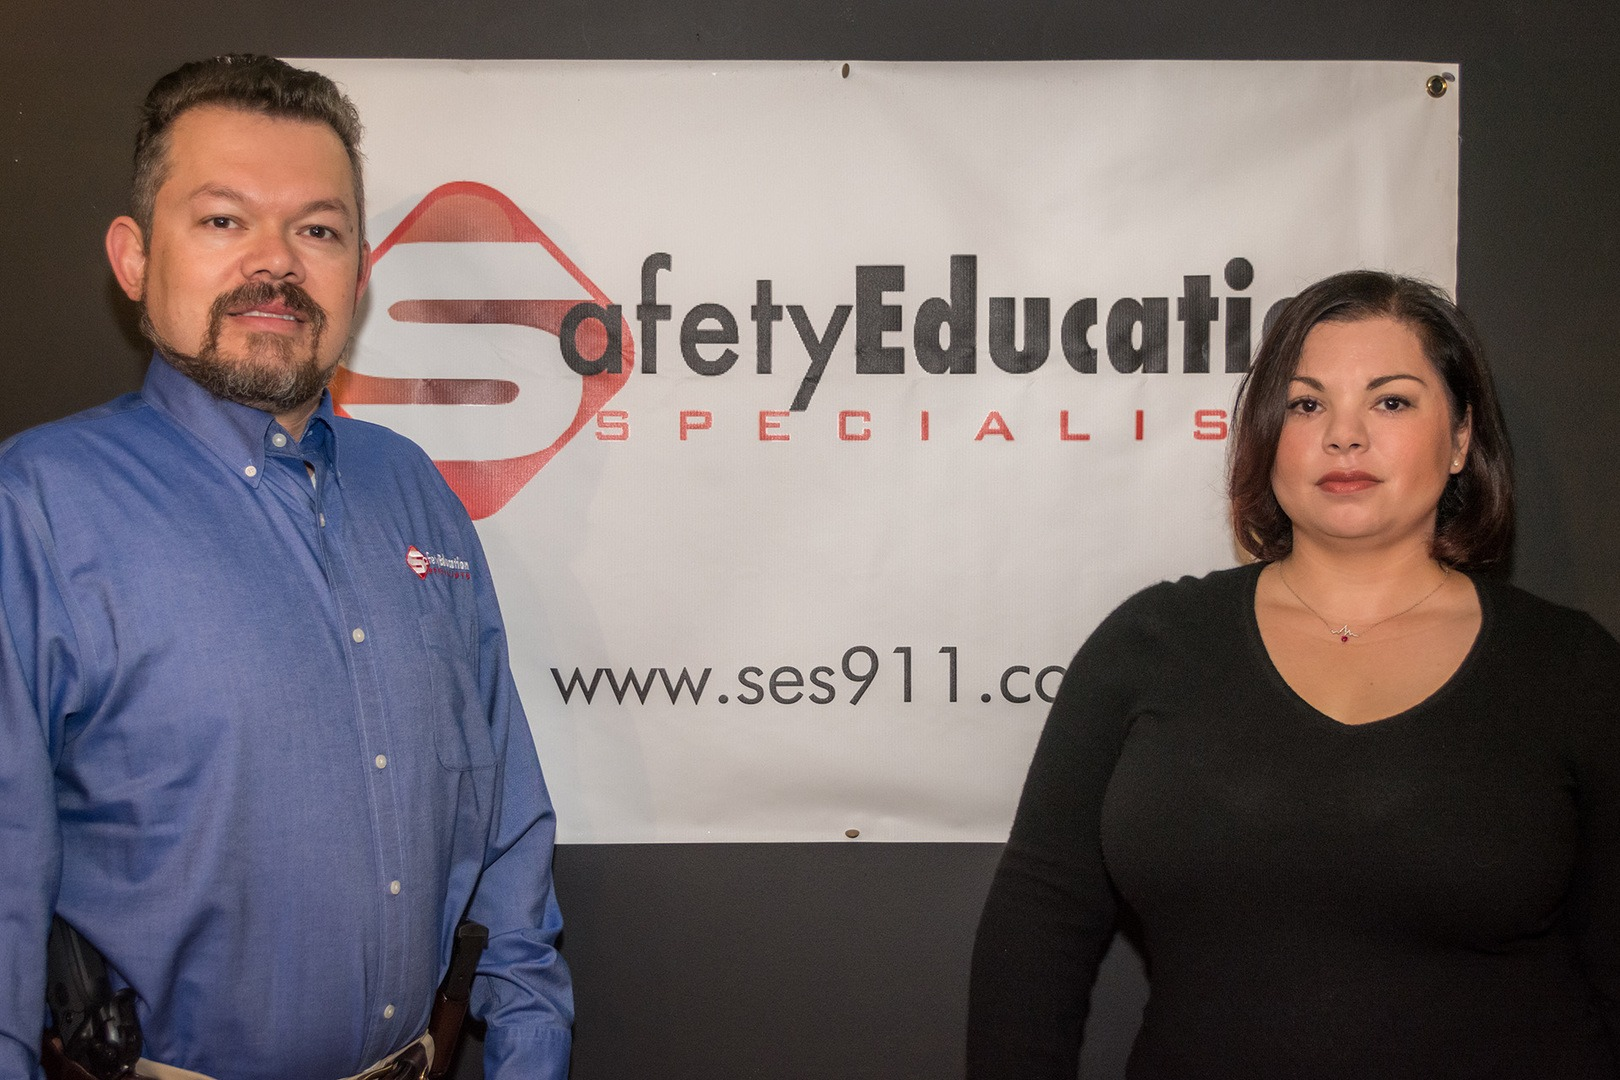 Safety education specialists ses911 safety education specialists is an elite cpr aed first aid and safety training consulting company offering classes to cover all levels xflitez Gallery